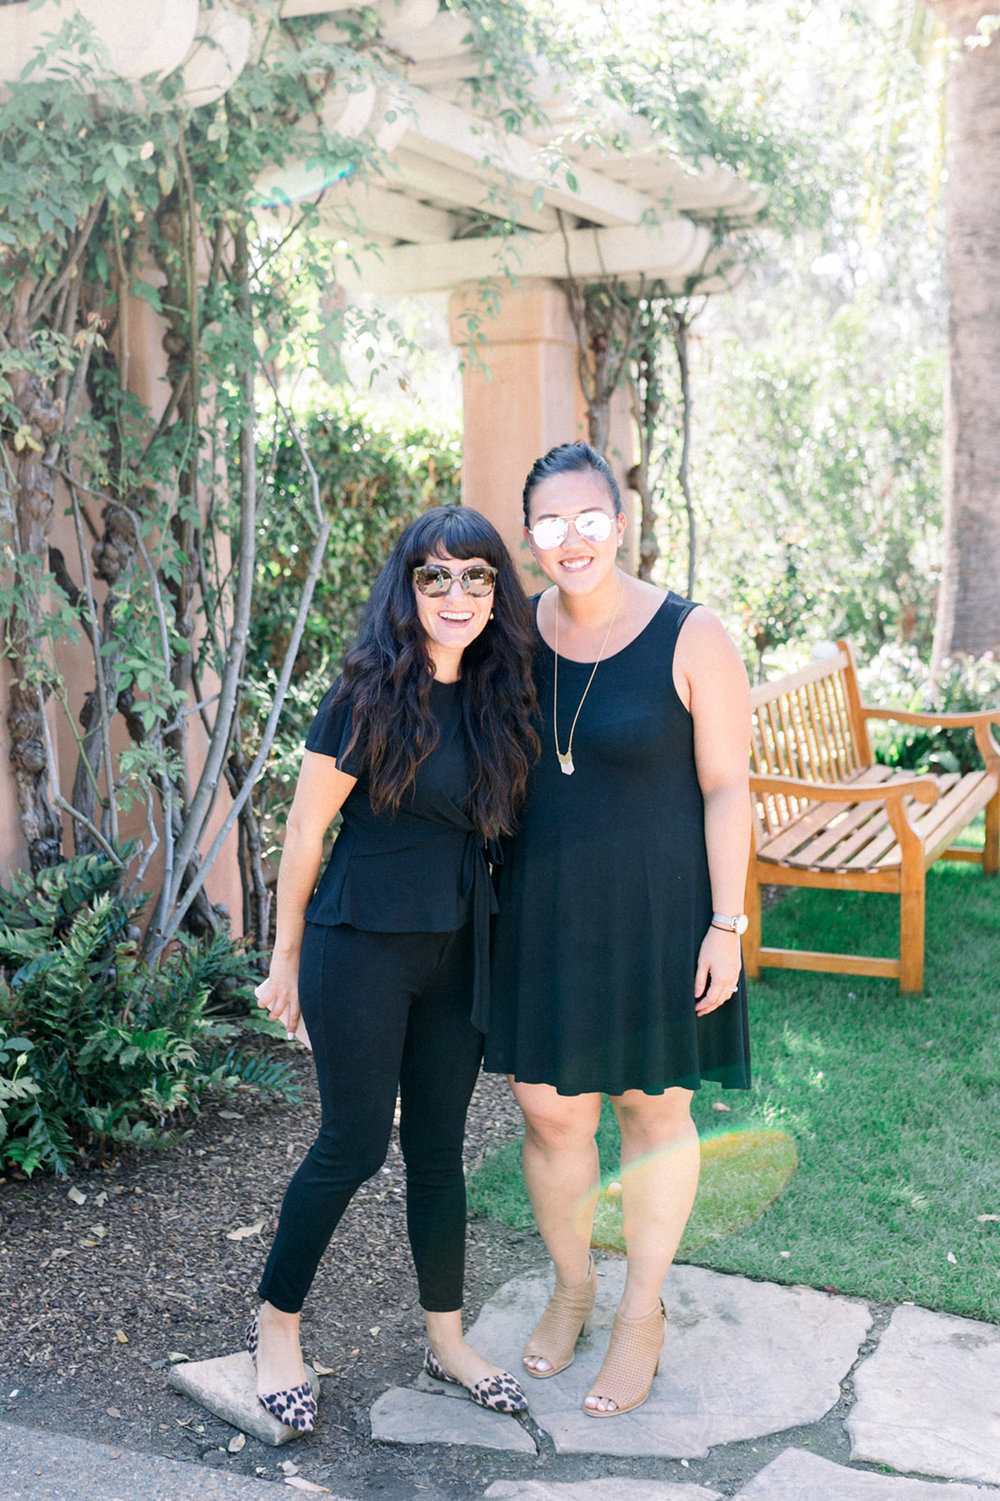 Alexis Sanabria, Vendor Partnerships Manager & Cami Tran, Events Manager for Exquisite Weddings Magazine